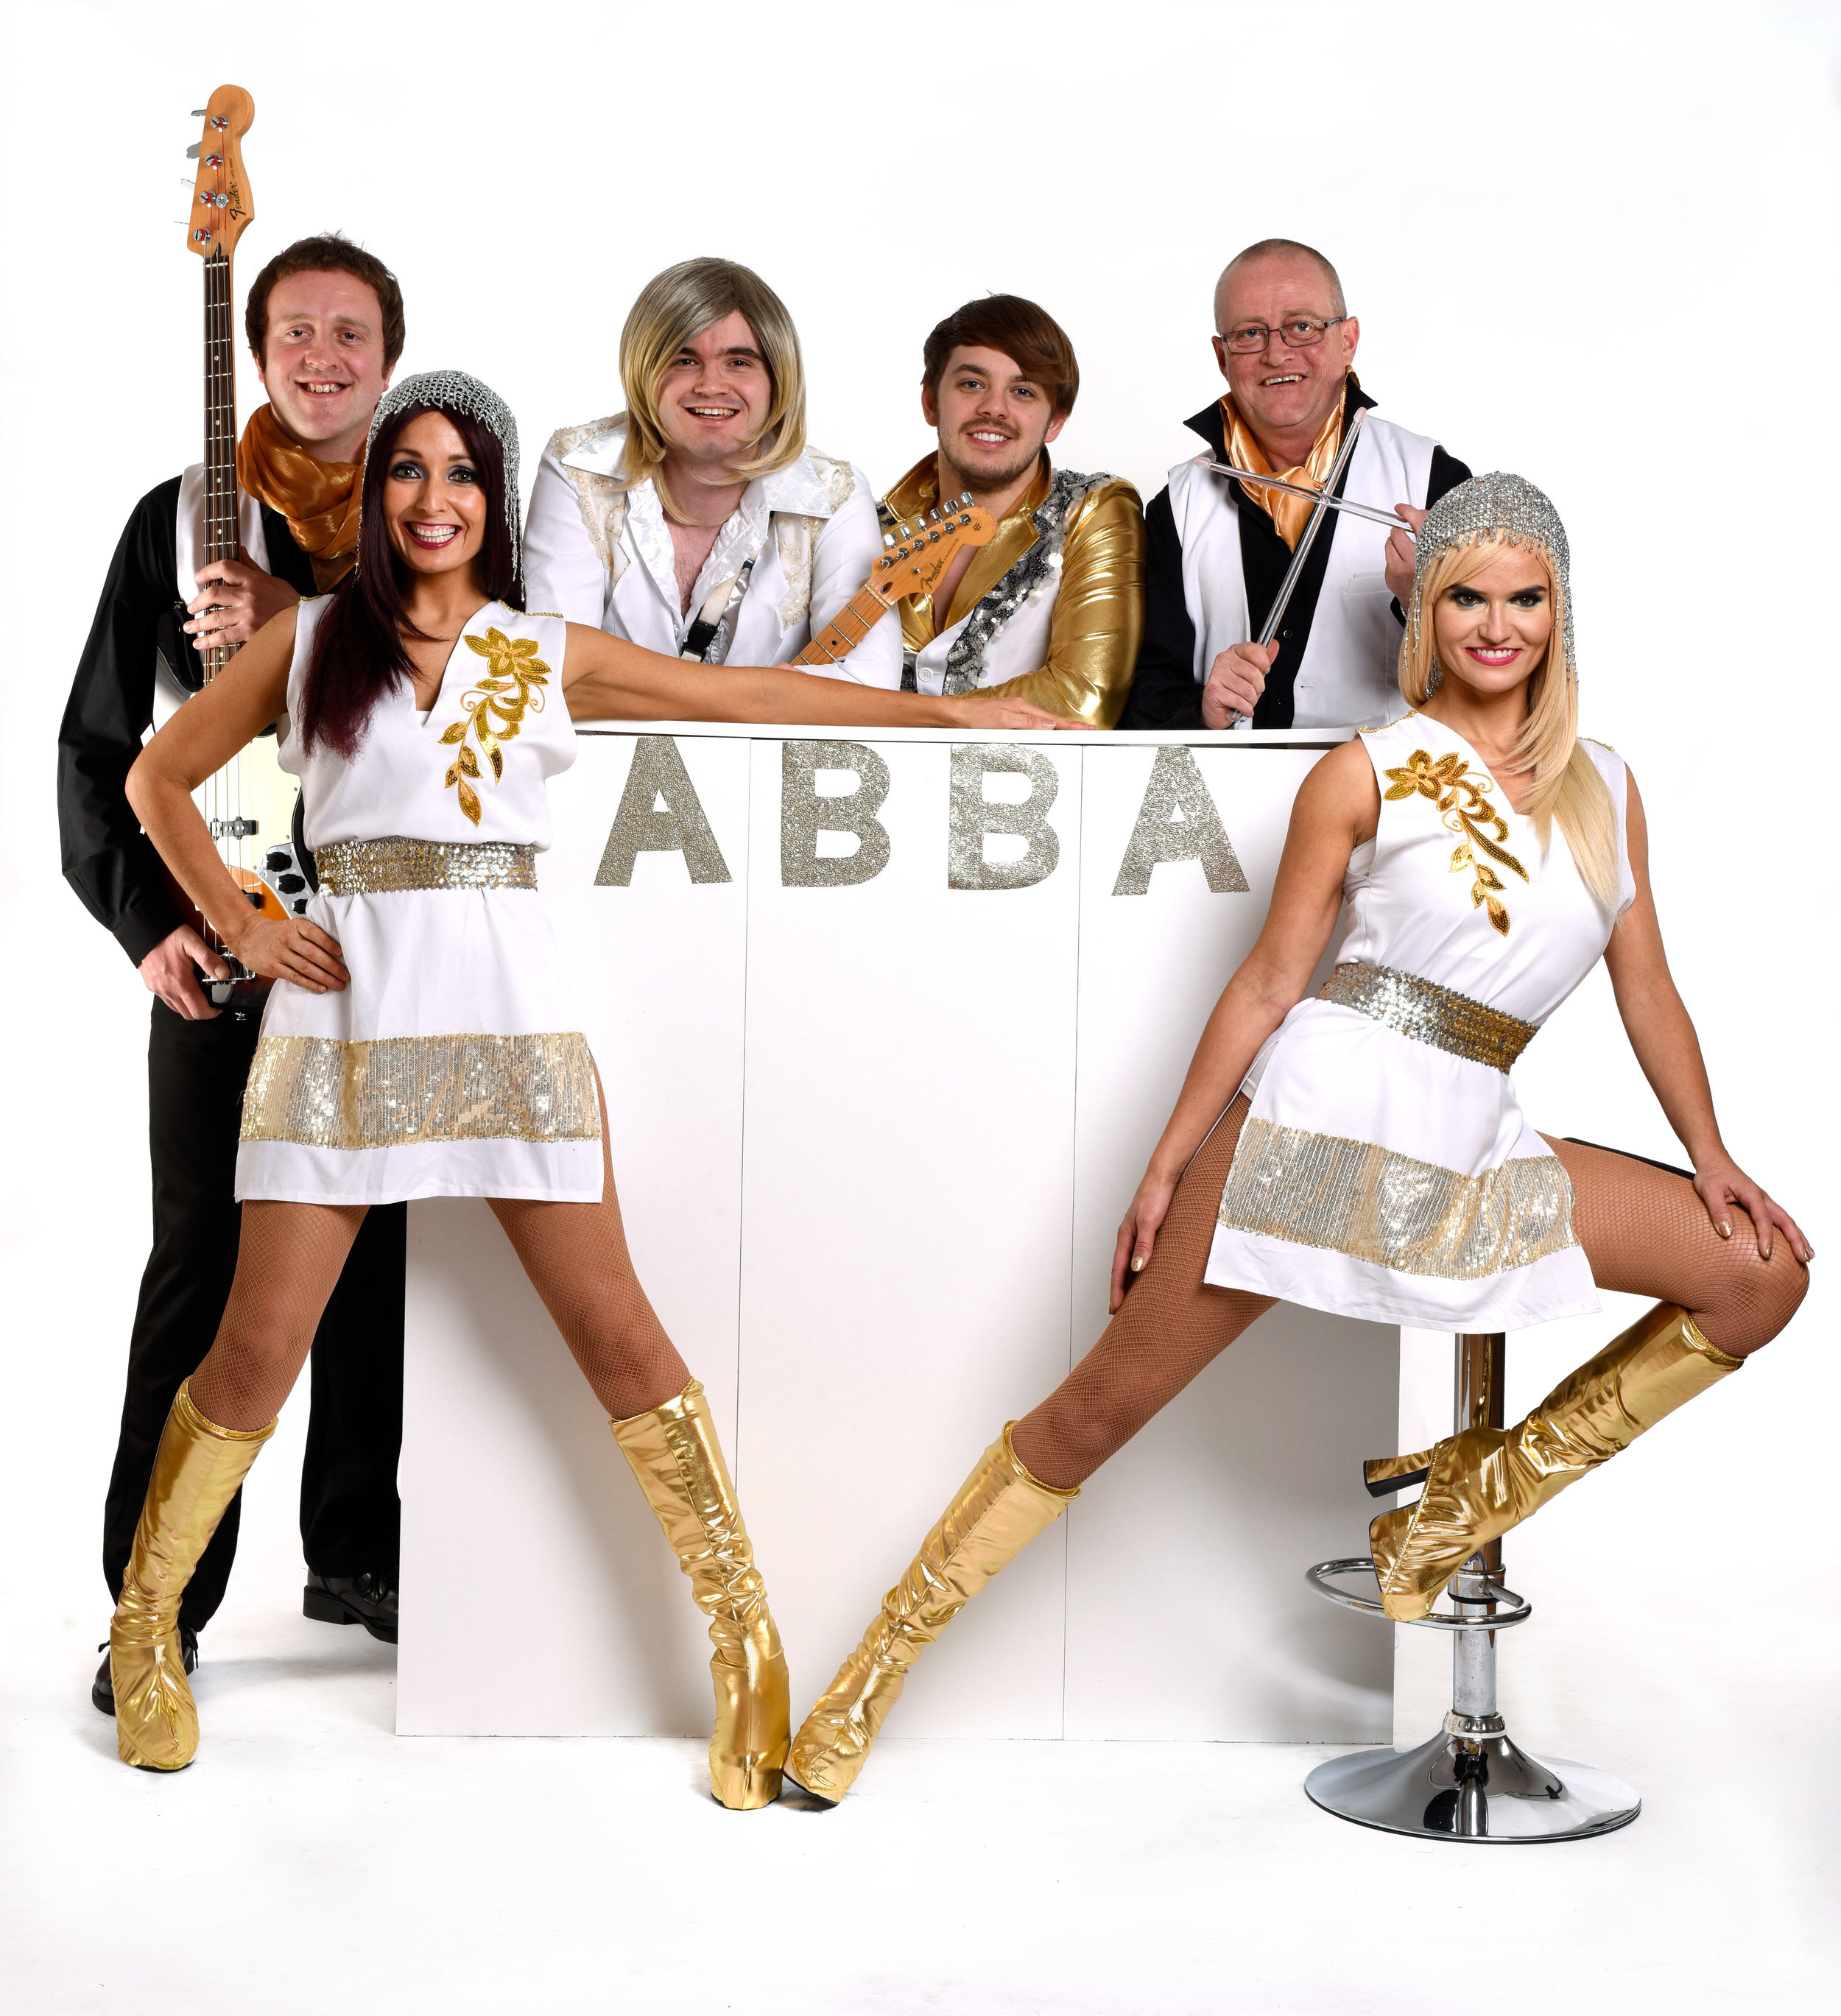 Abba Arival xsp.co.uk.jpg